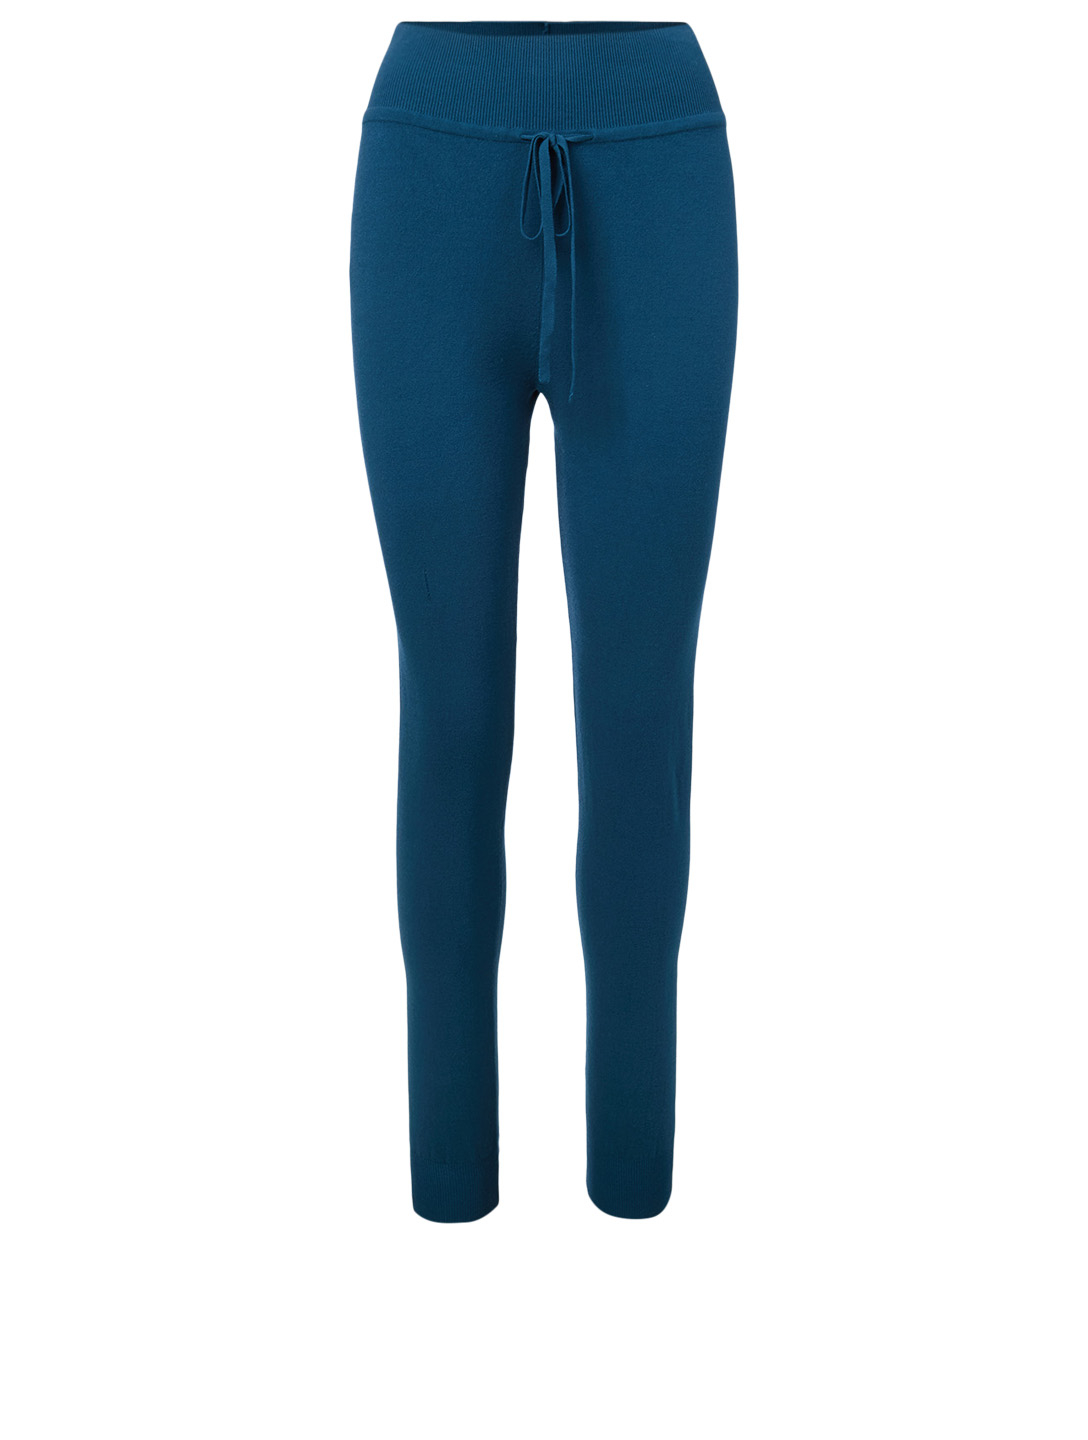 LIVE THE PROCESS Knit High-Waisted Pants Women's Blue